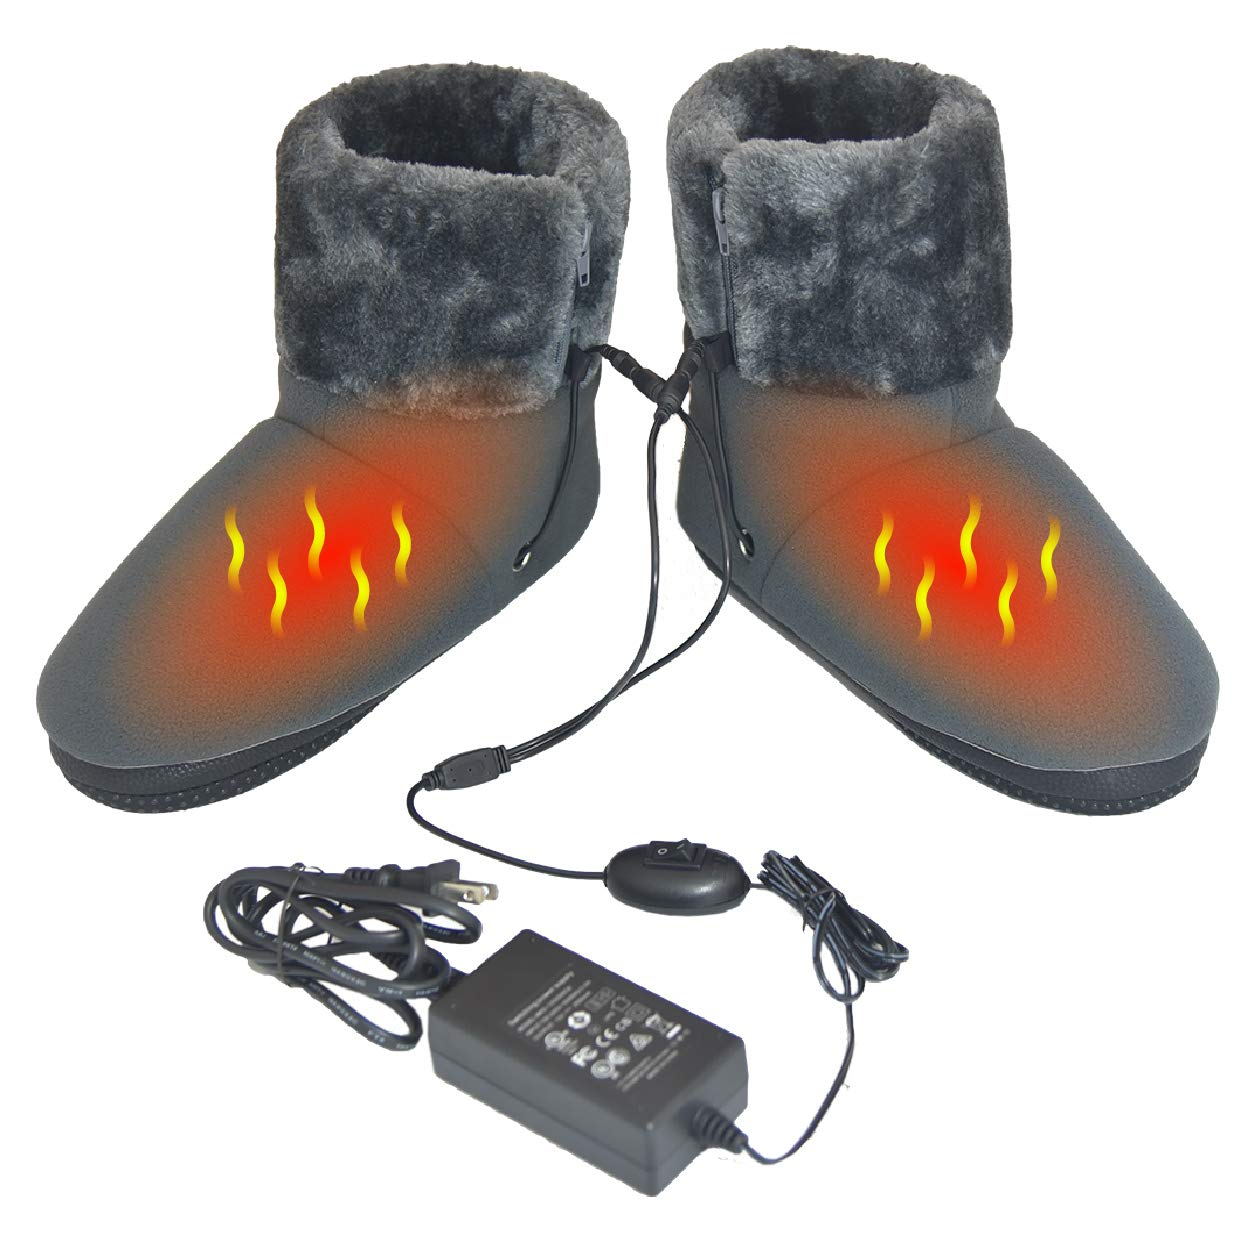 ObboMed MF-2320L Far Infrared Carbon Fiber Heated Foot Warmer/Boots/Slipper, 12V 20W – Far Infrared wavelength 8-15 μm (Health Range: 4-14 μm), Auto Off, Size L: #45.5 (fits Foot up to 45.5)